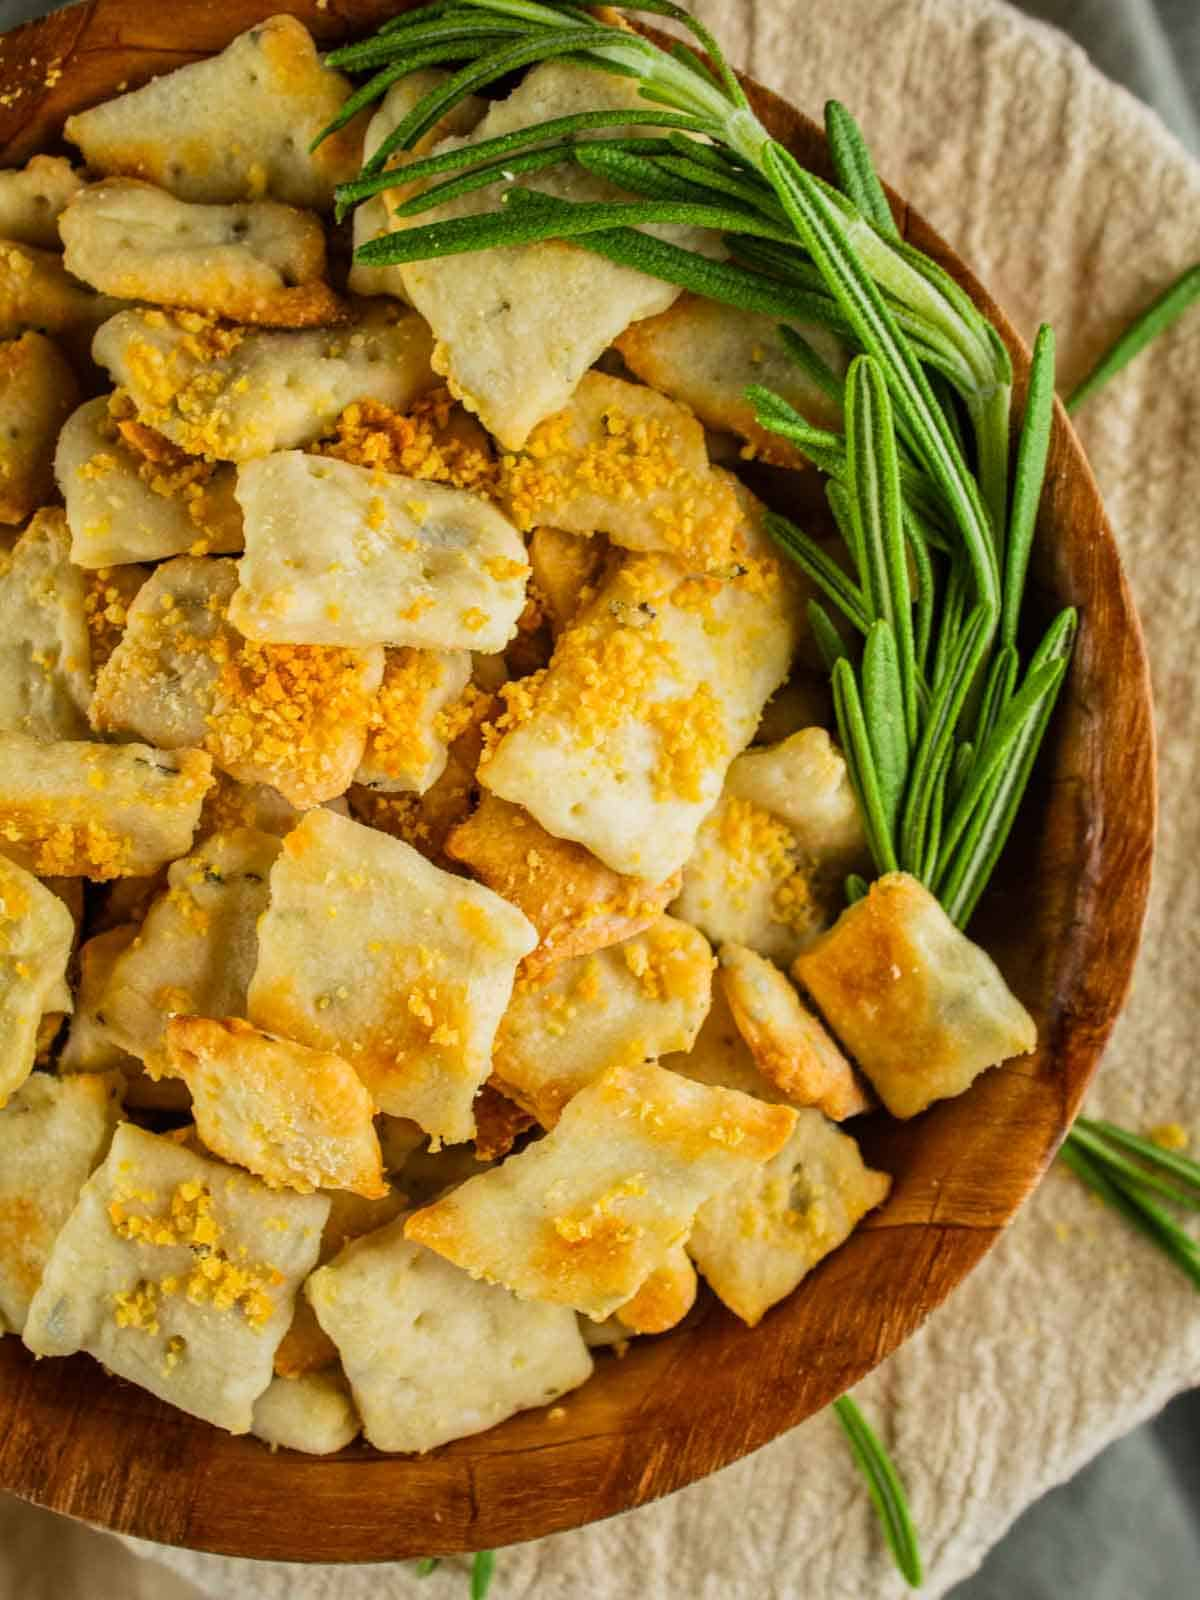 wooden bowl filled with homemade crackers topped with parmesan cheese and fresh rosemary next to it